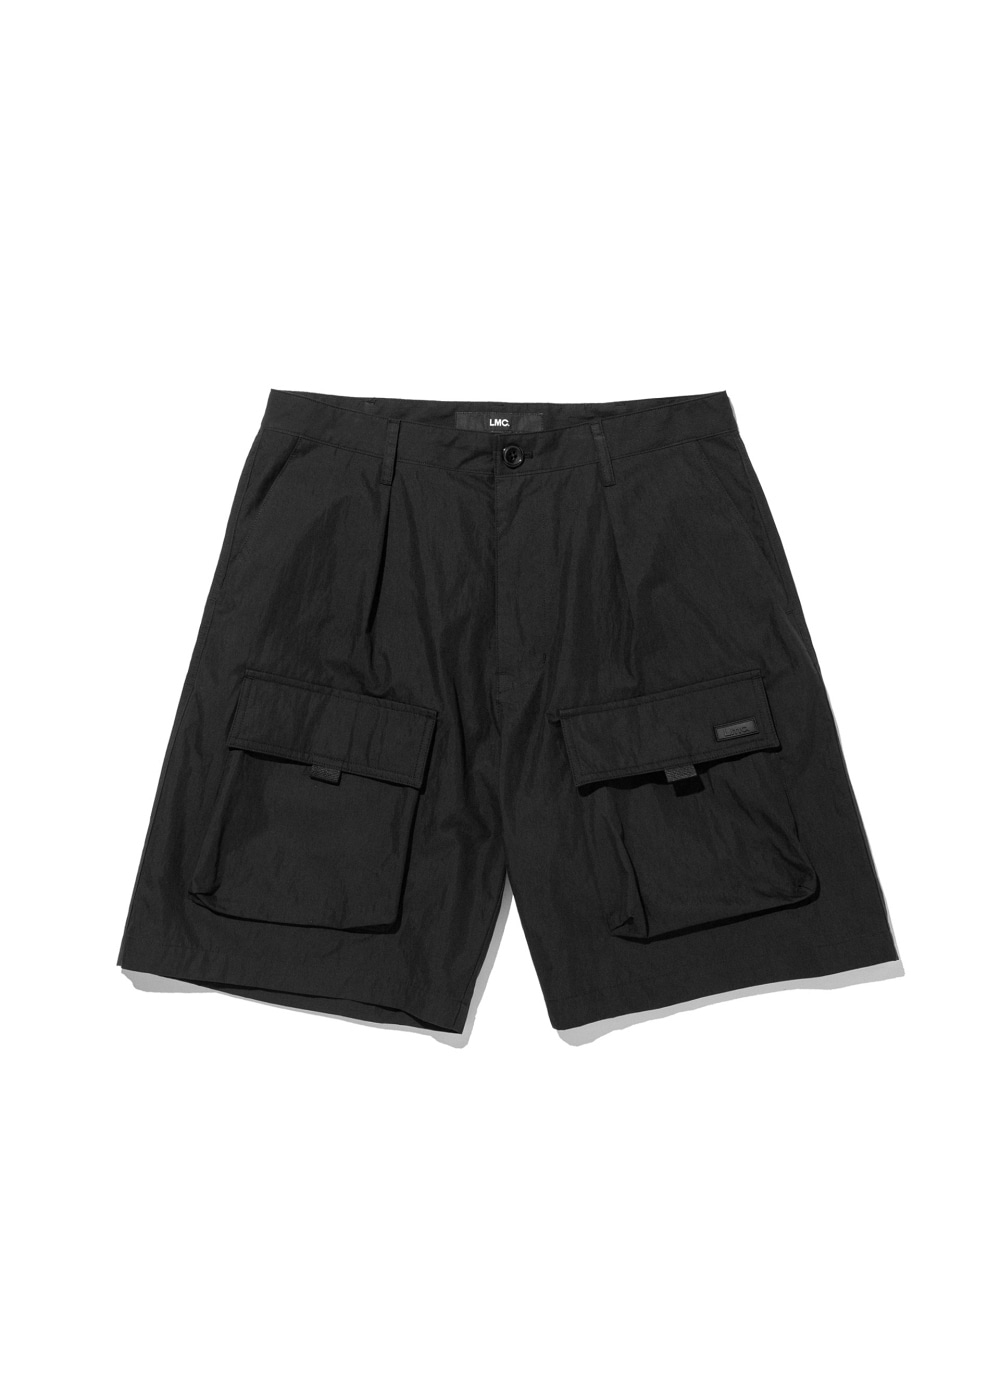 LMC FRONT CARGO TECH SHORTS black